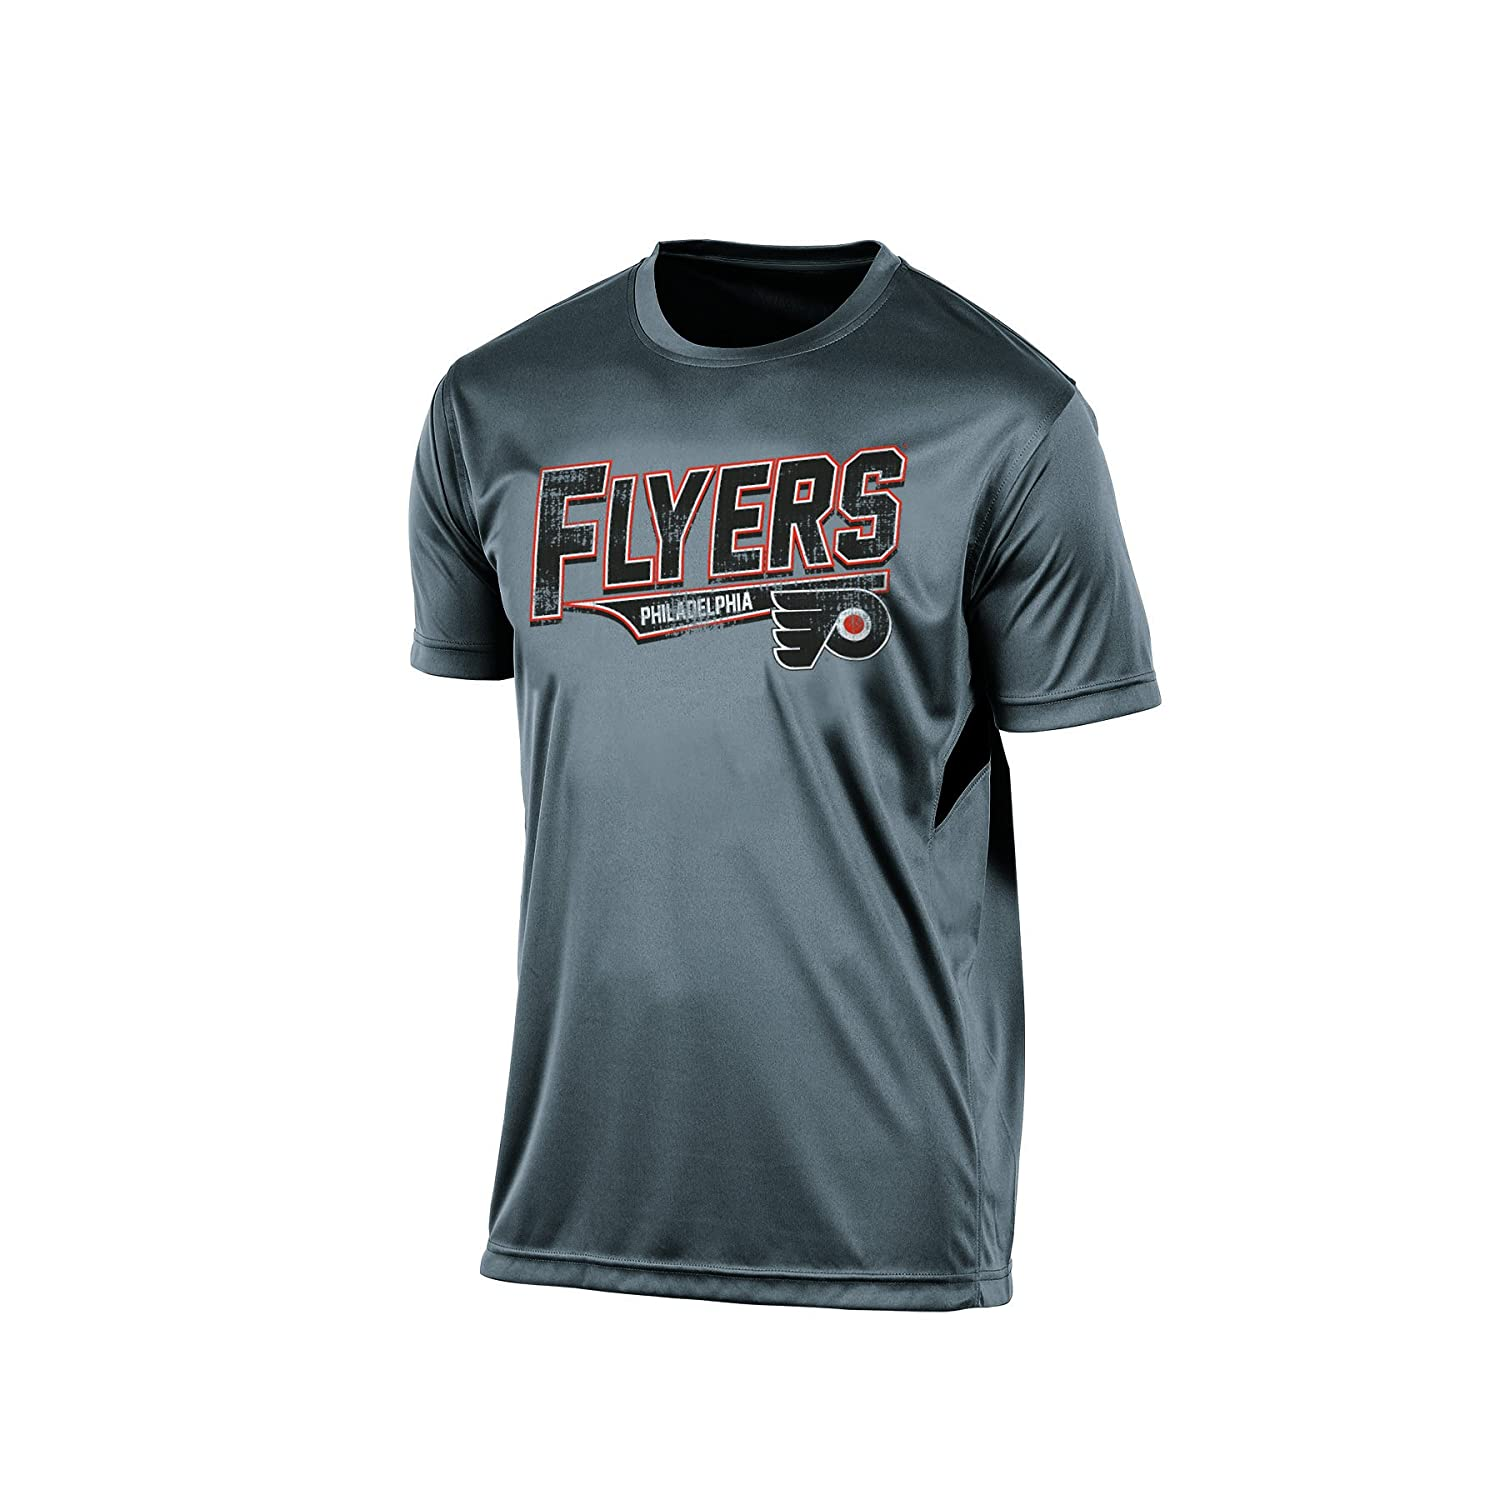 8949a4e0c Amazon.com   Knights Apparel NHL Men s Twisted Tee   Sports   Outdoors